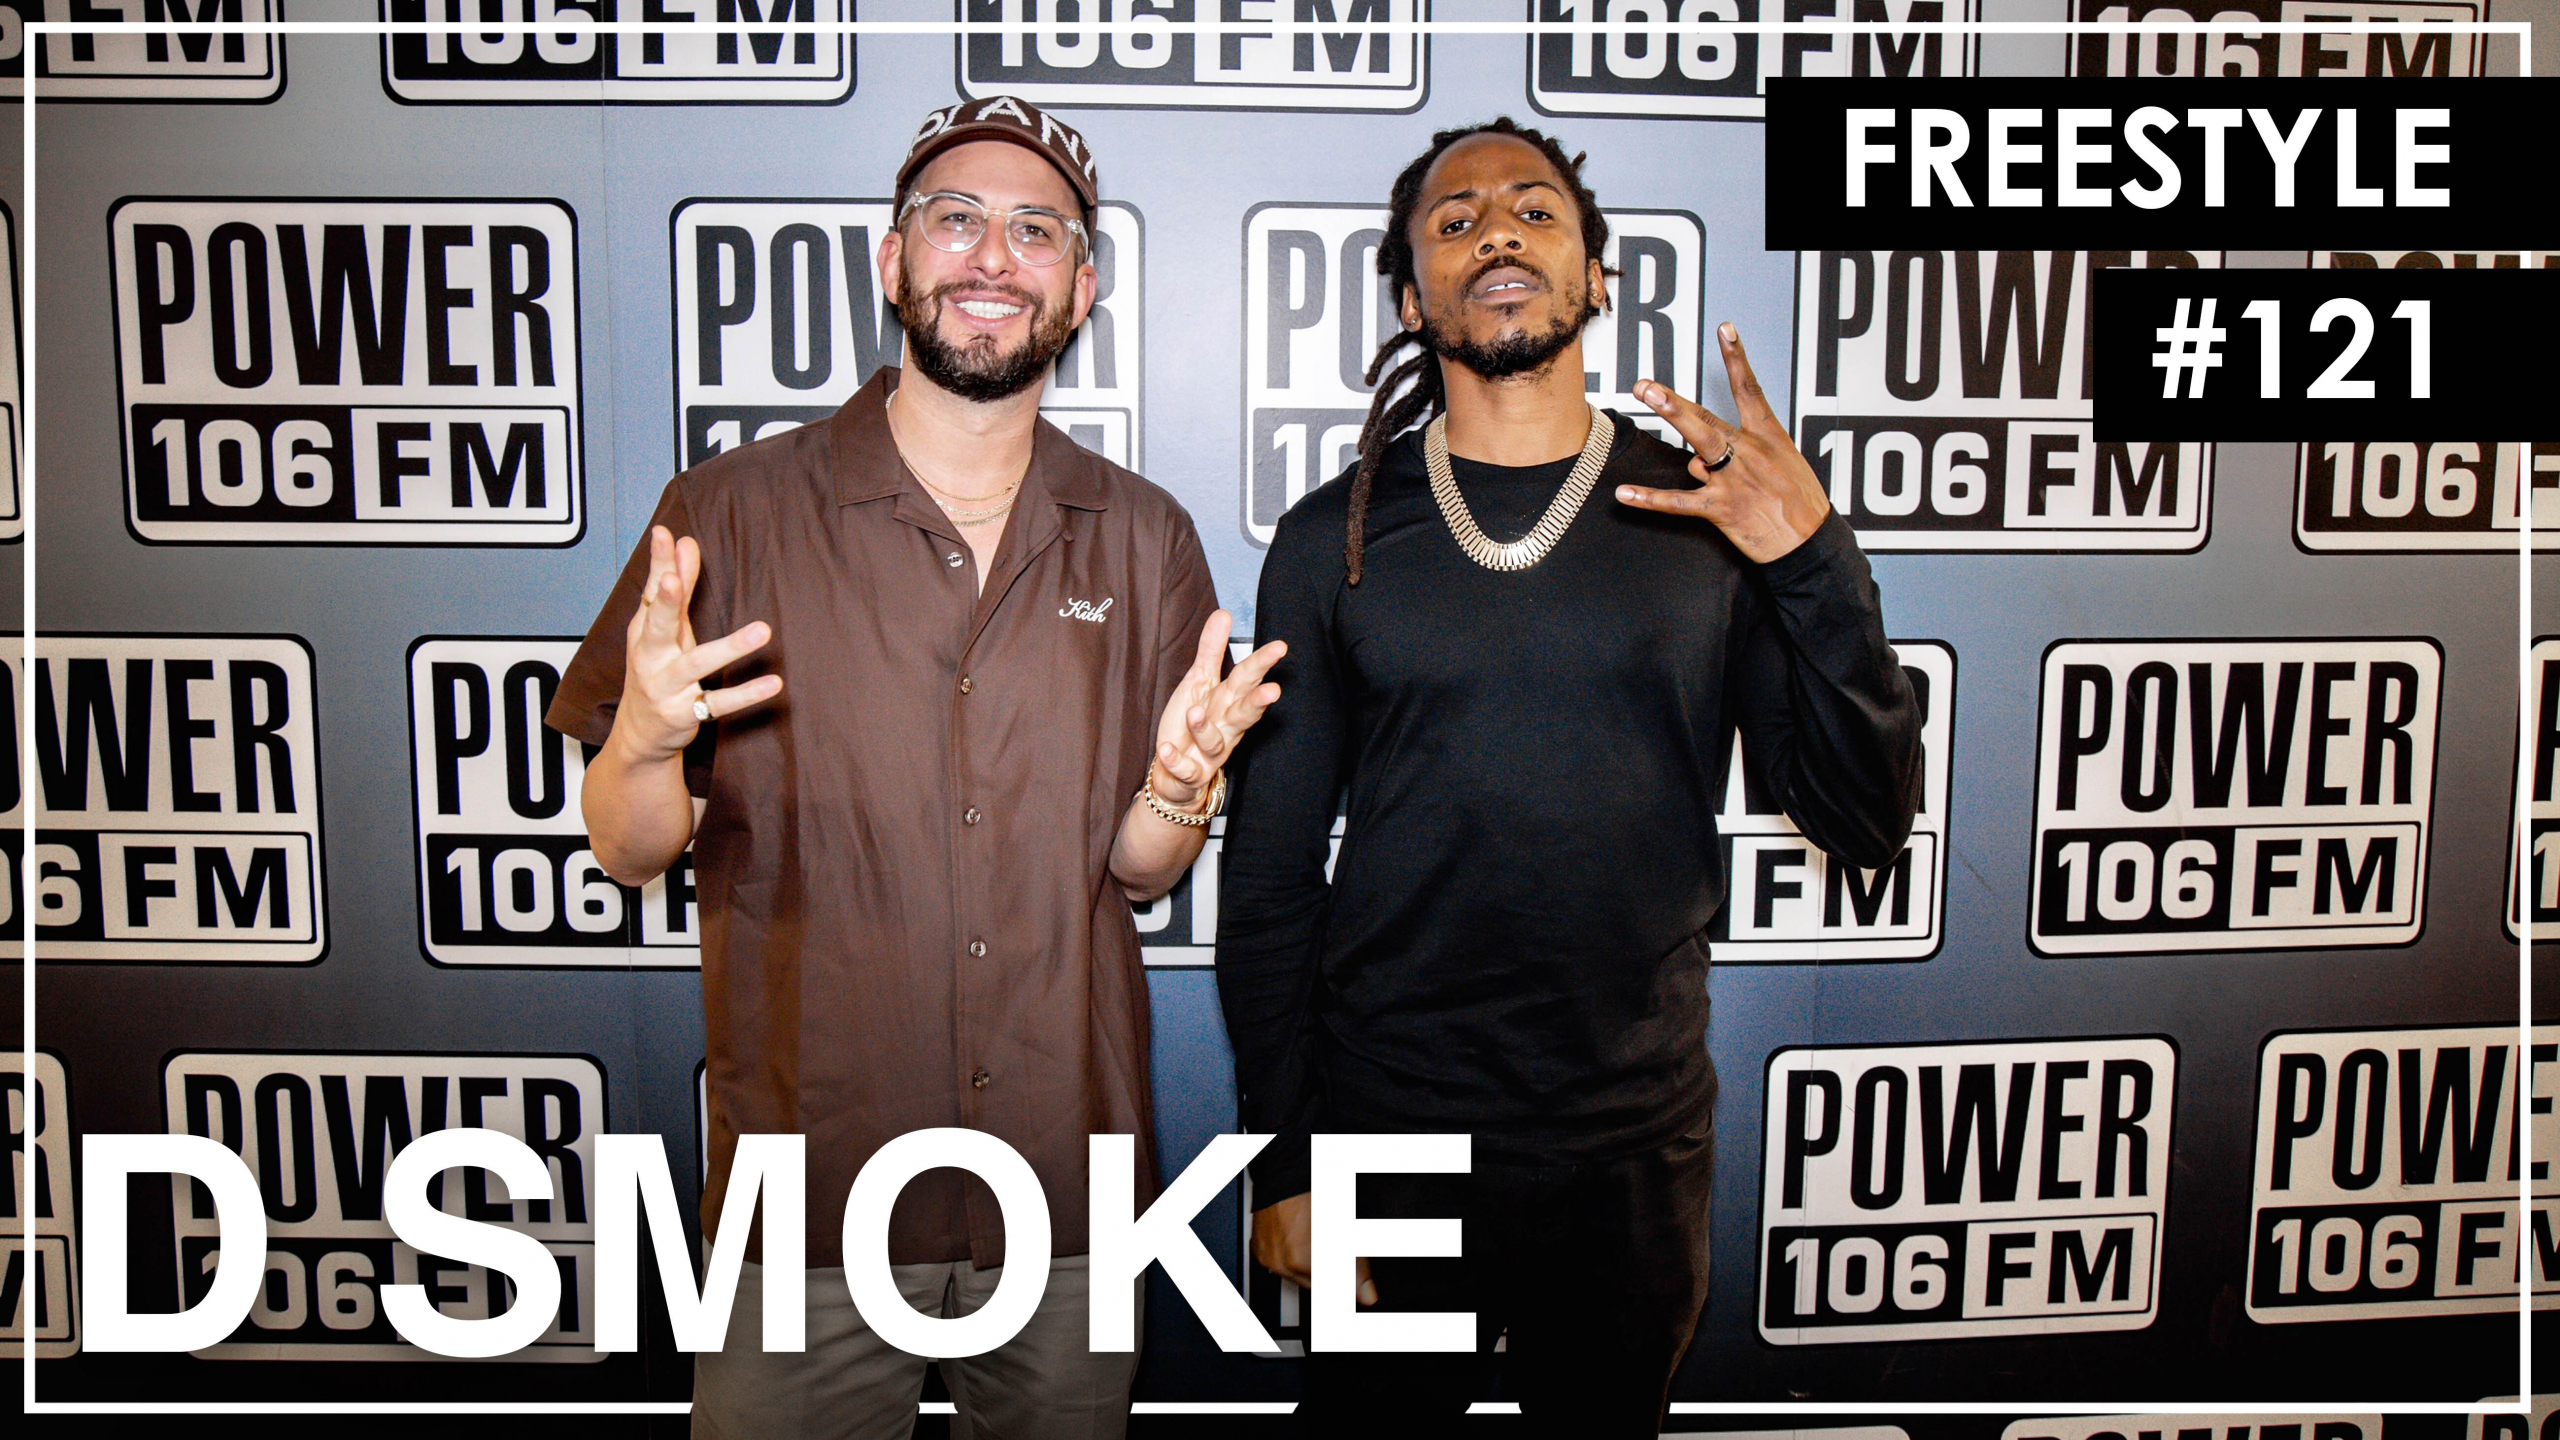 """D Smoke Effortlessly Spits Bars Over J. Cole's """"Let Go My Hand"""" Beat – L.A. Leakers Freestyle #121"""